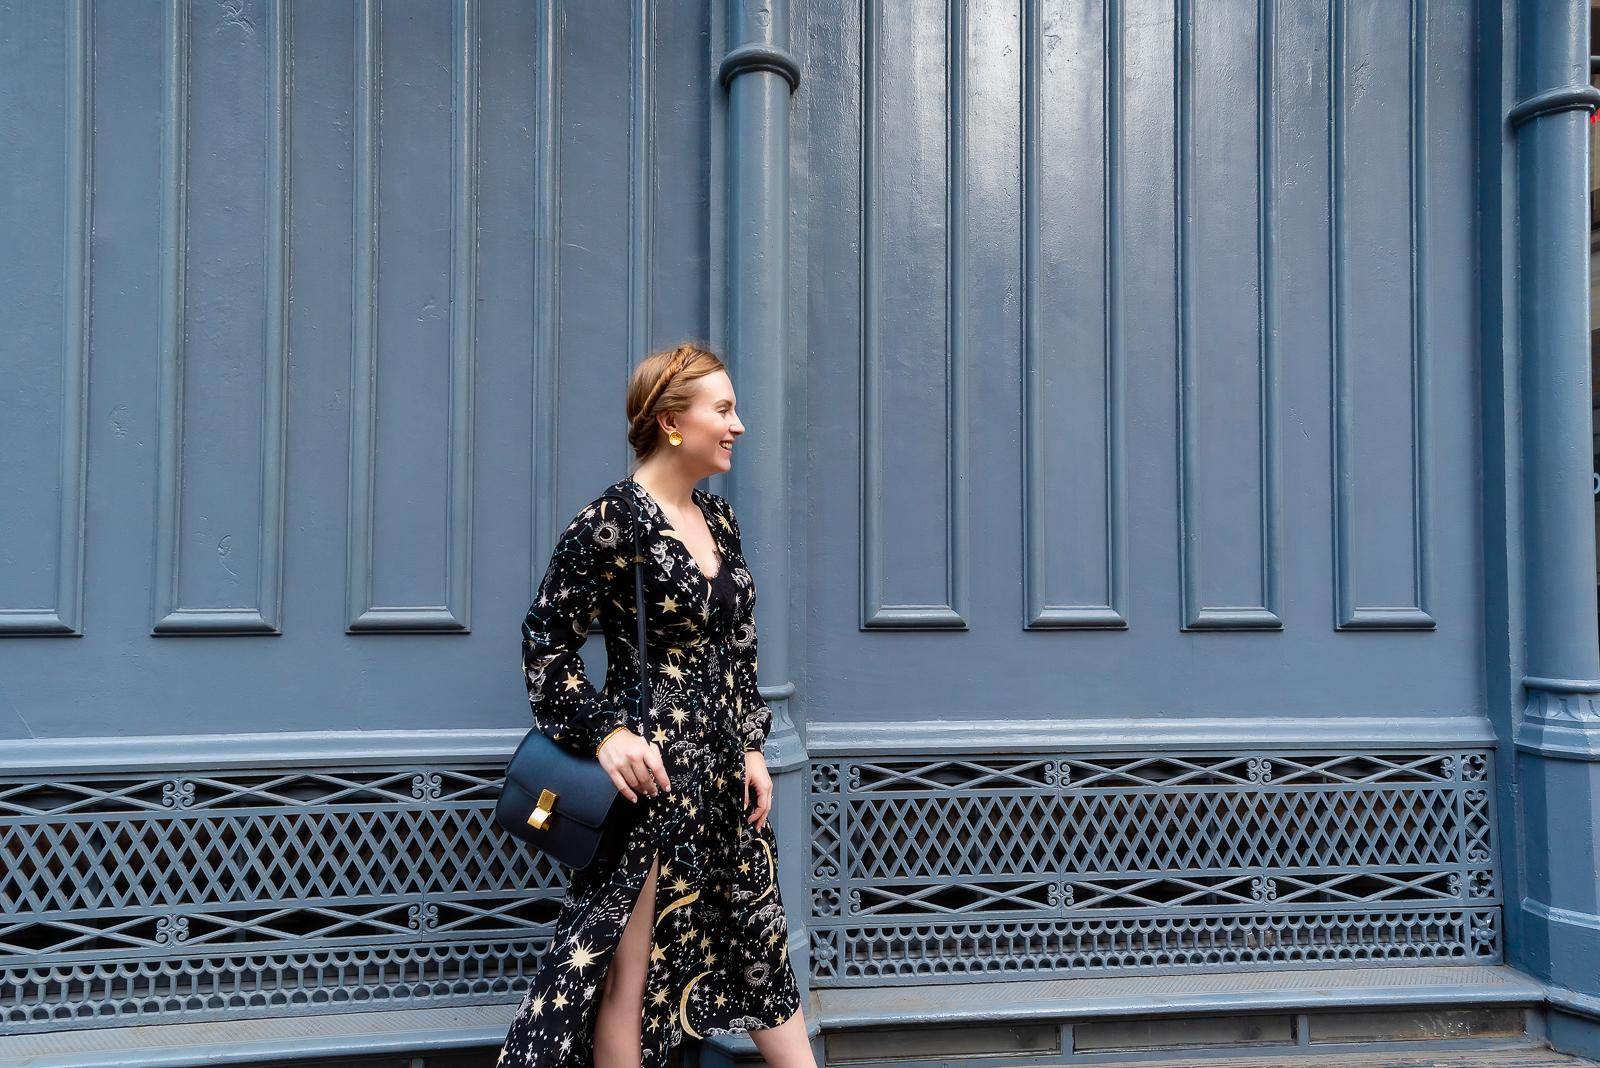 Star Print Soho NYC Outfit